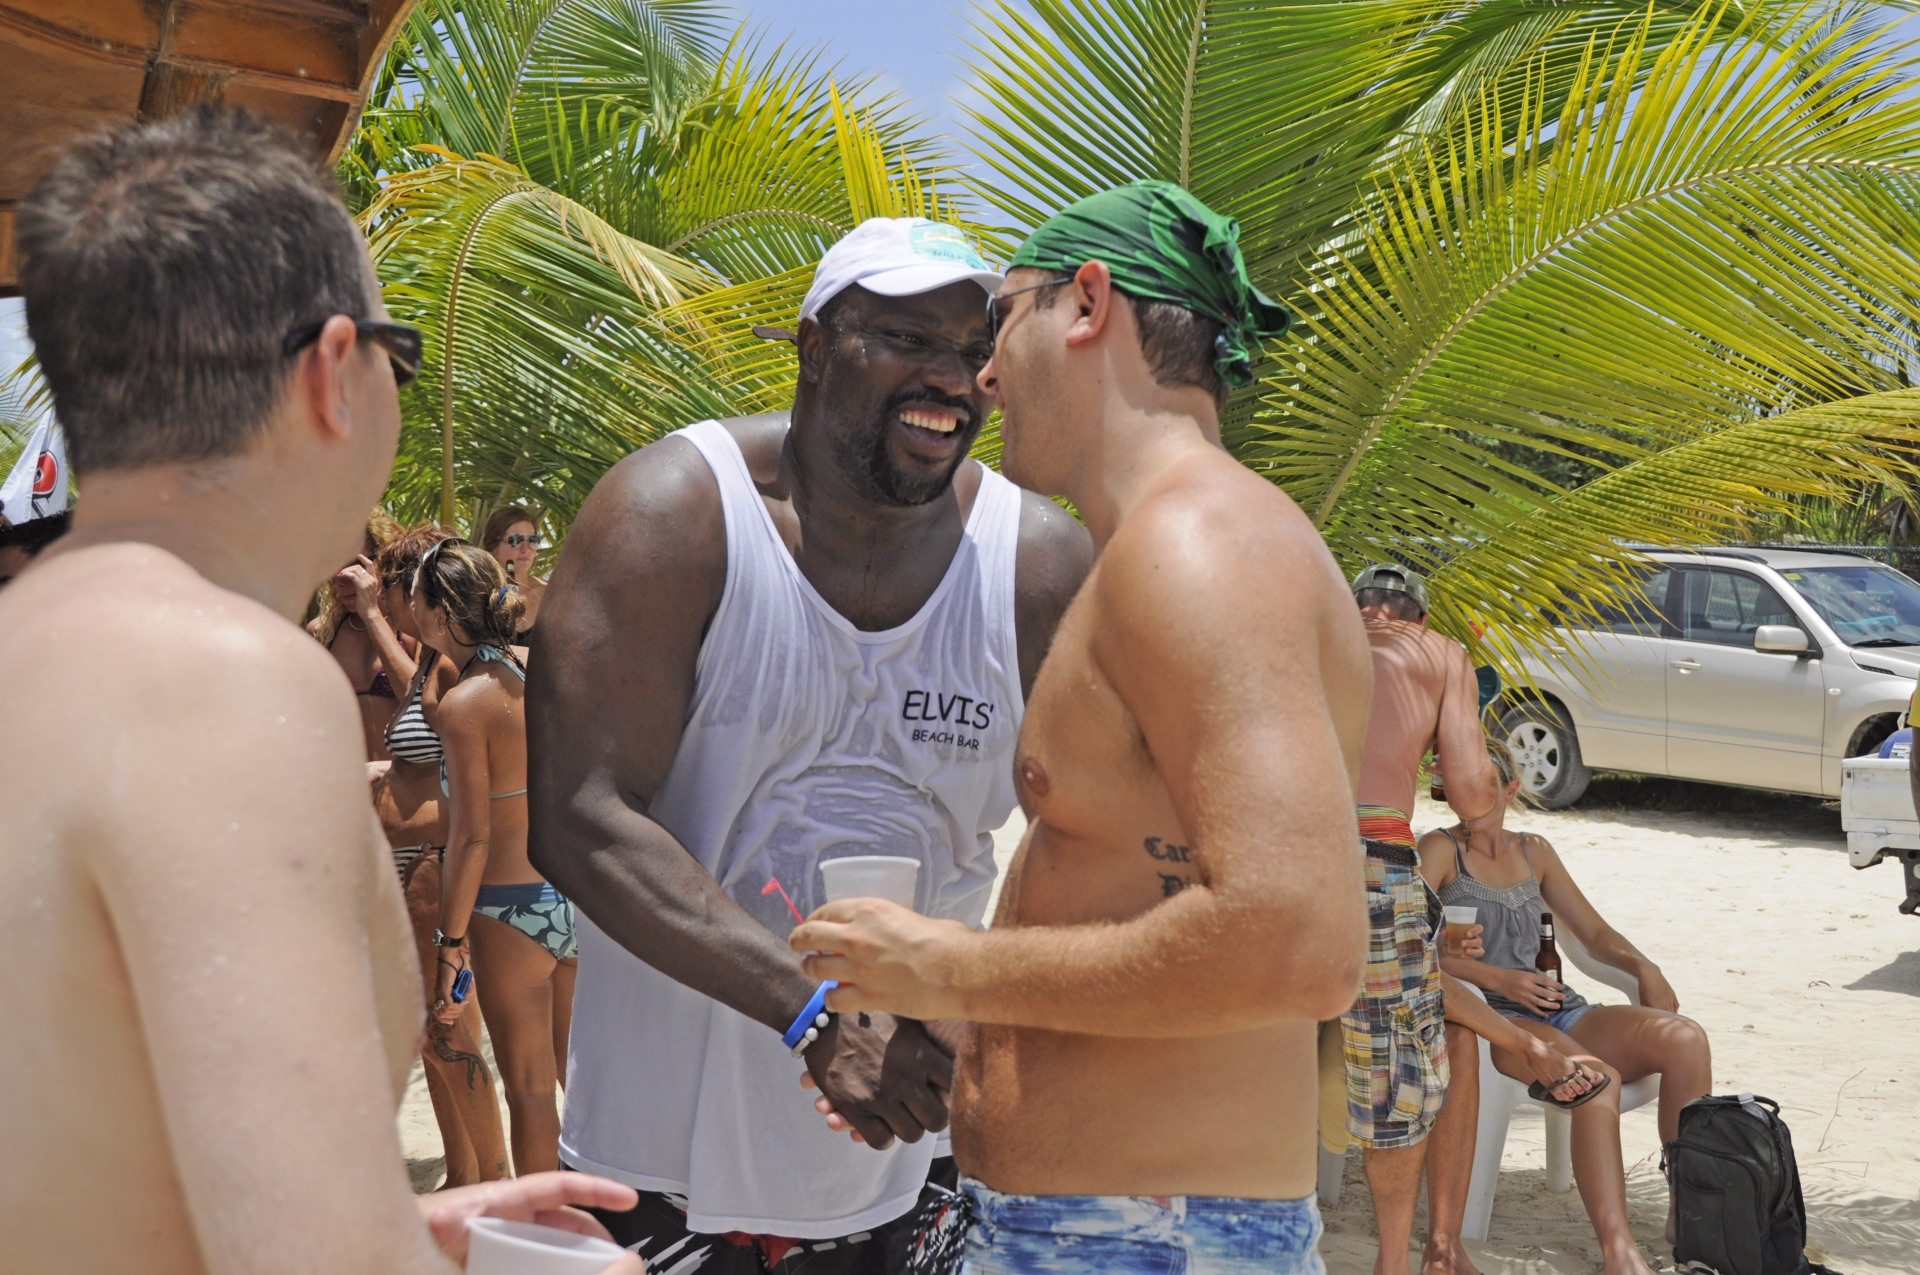 Jeff meeting Warren Sapp in Anguila